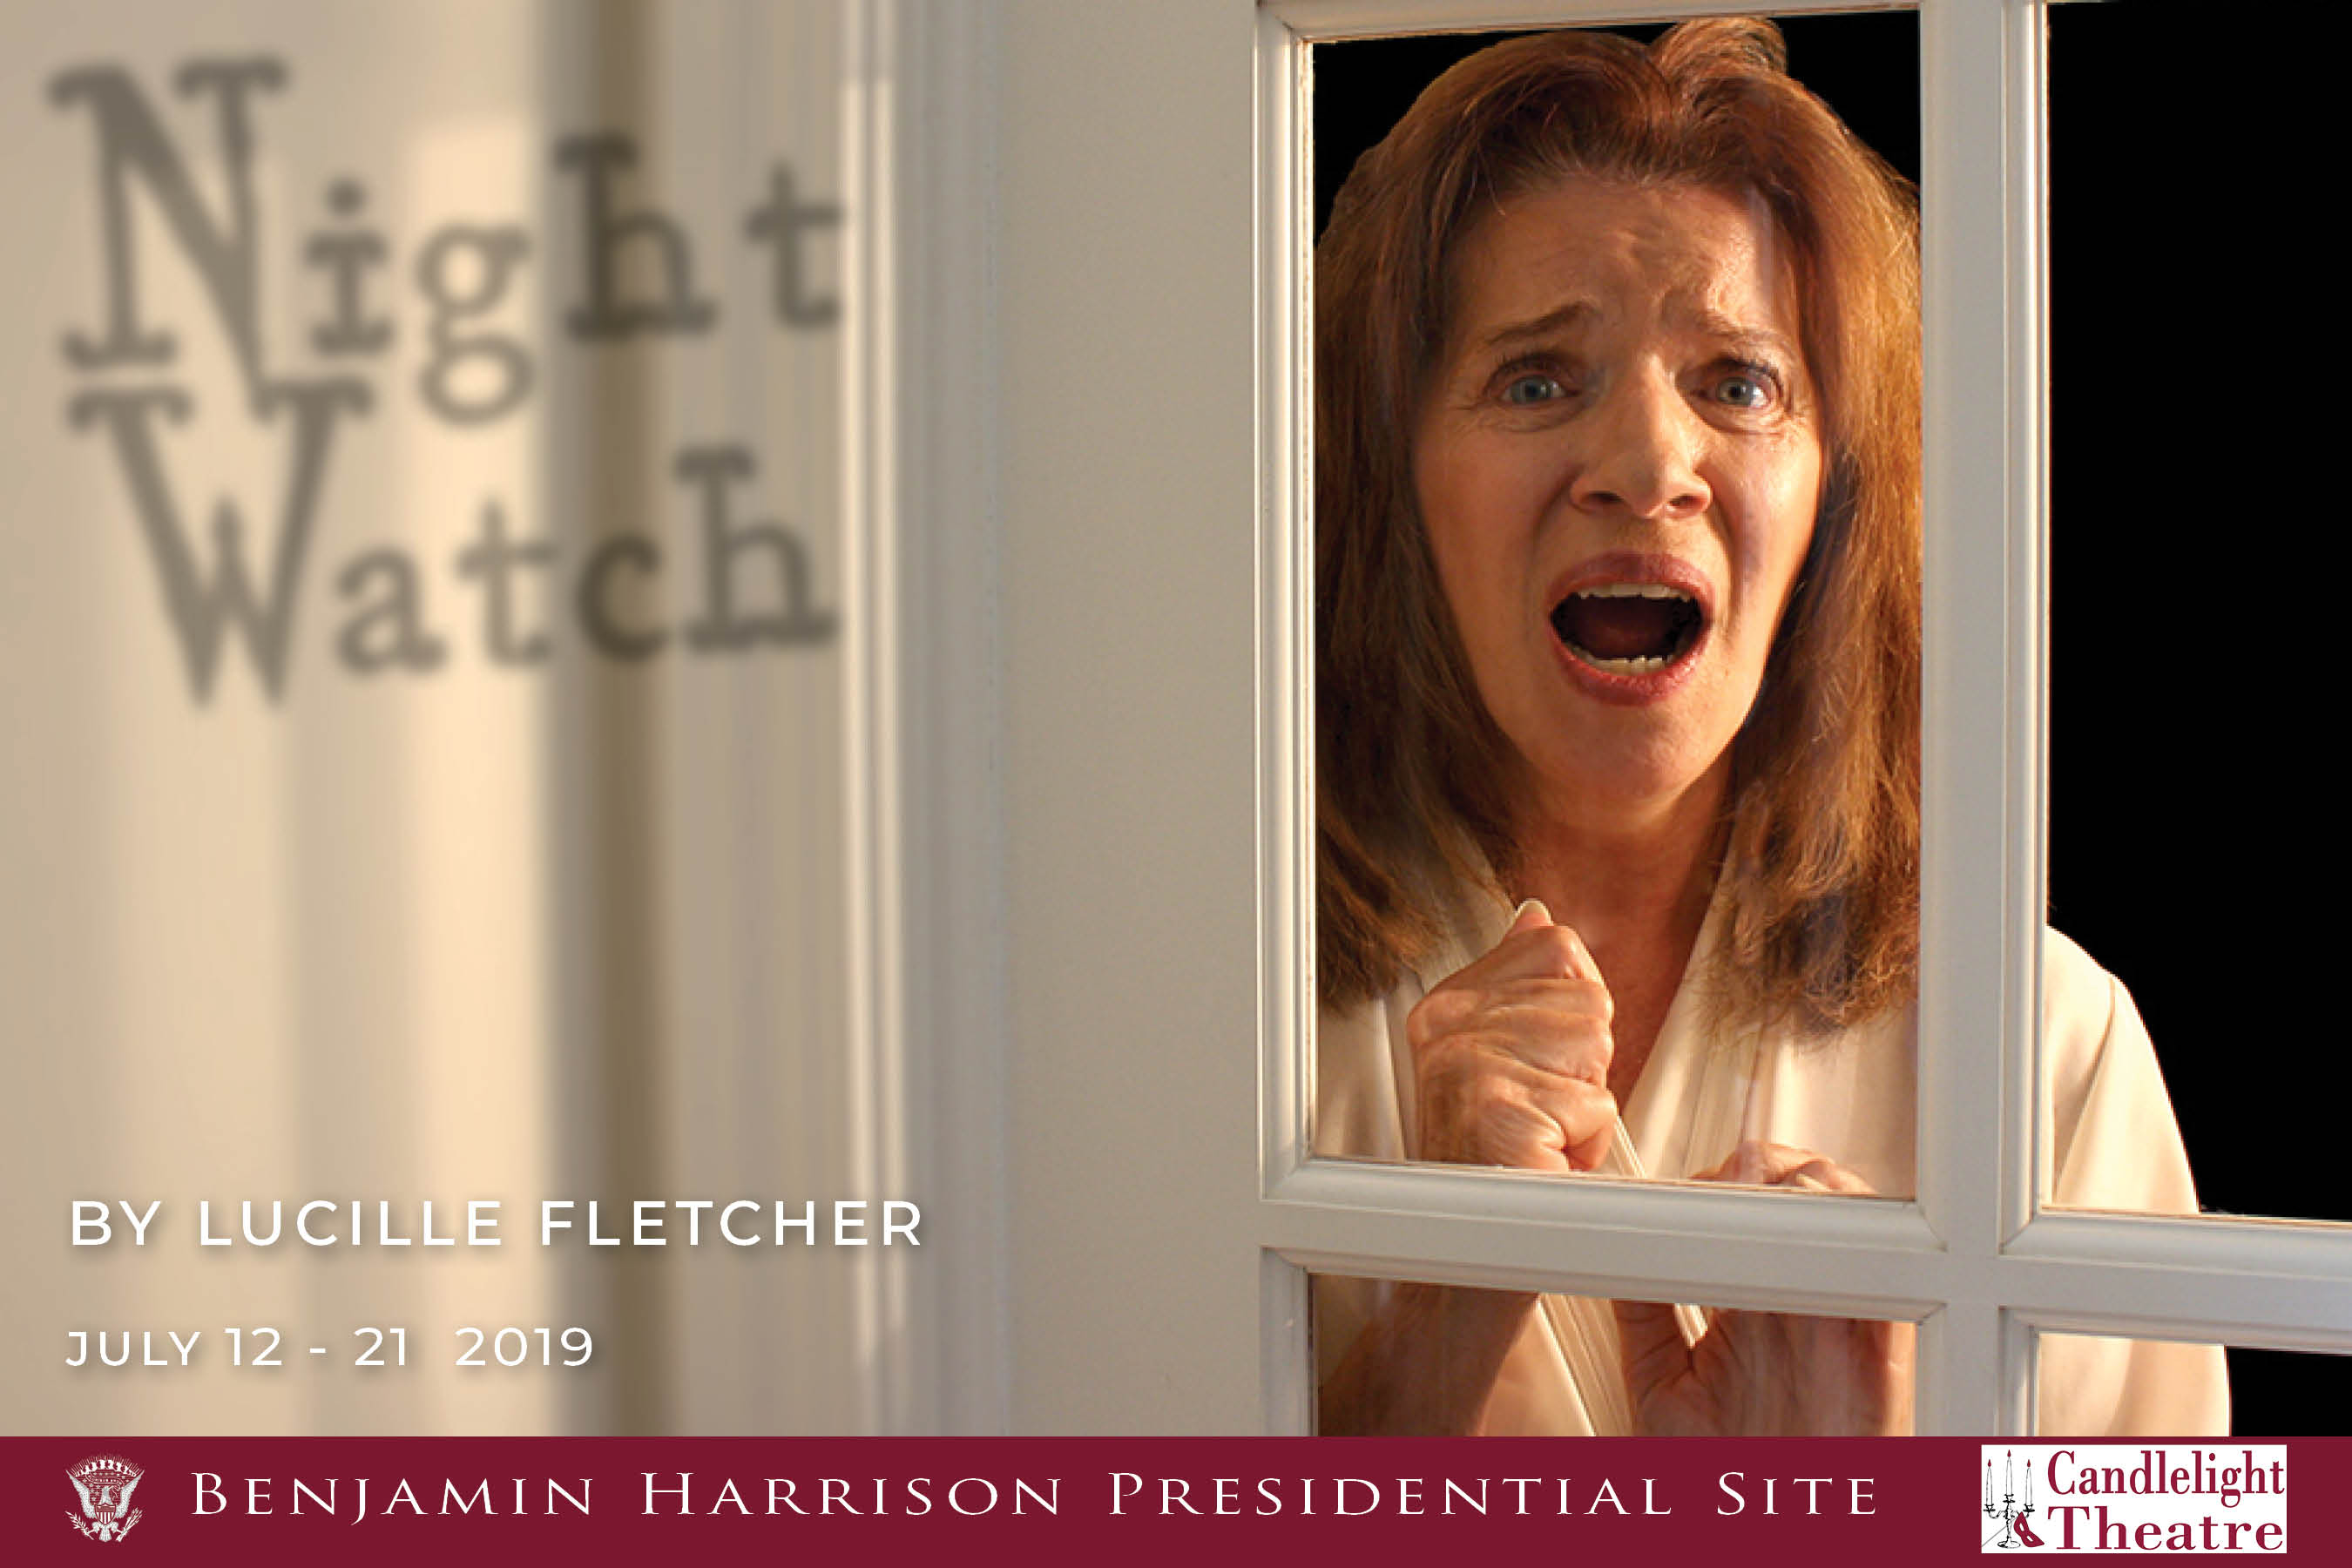 Promotional image for Night watch at the candlelight theater. The image depicts a woman looking through a window with an expression of great terror. There is a shadow on the wall that reads, night watch. The rest of the text reads, by lucille fletcher, july 12 - 21 2019. Benjamin harrison presidential site candlelight theatre.